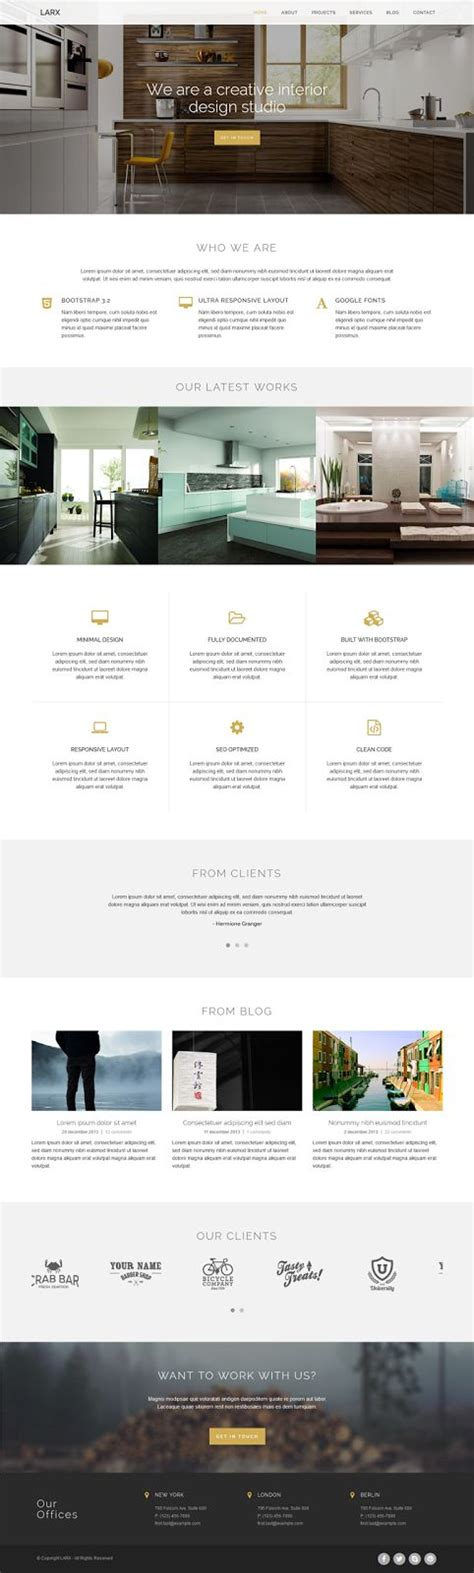 bootstrap templates for organisation 16 best bootstrap themes images on pinterest design